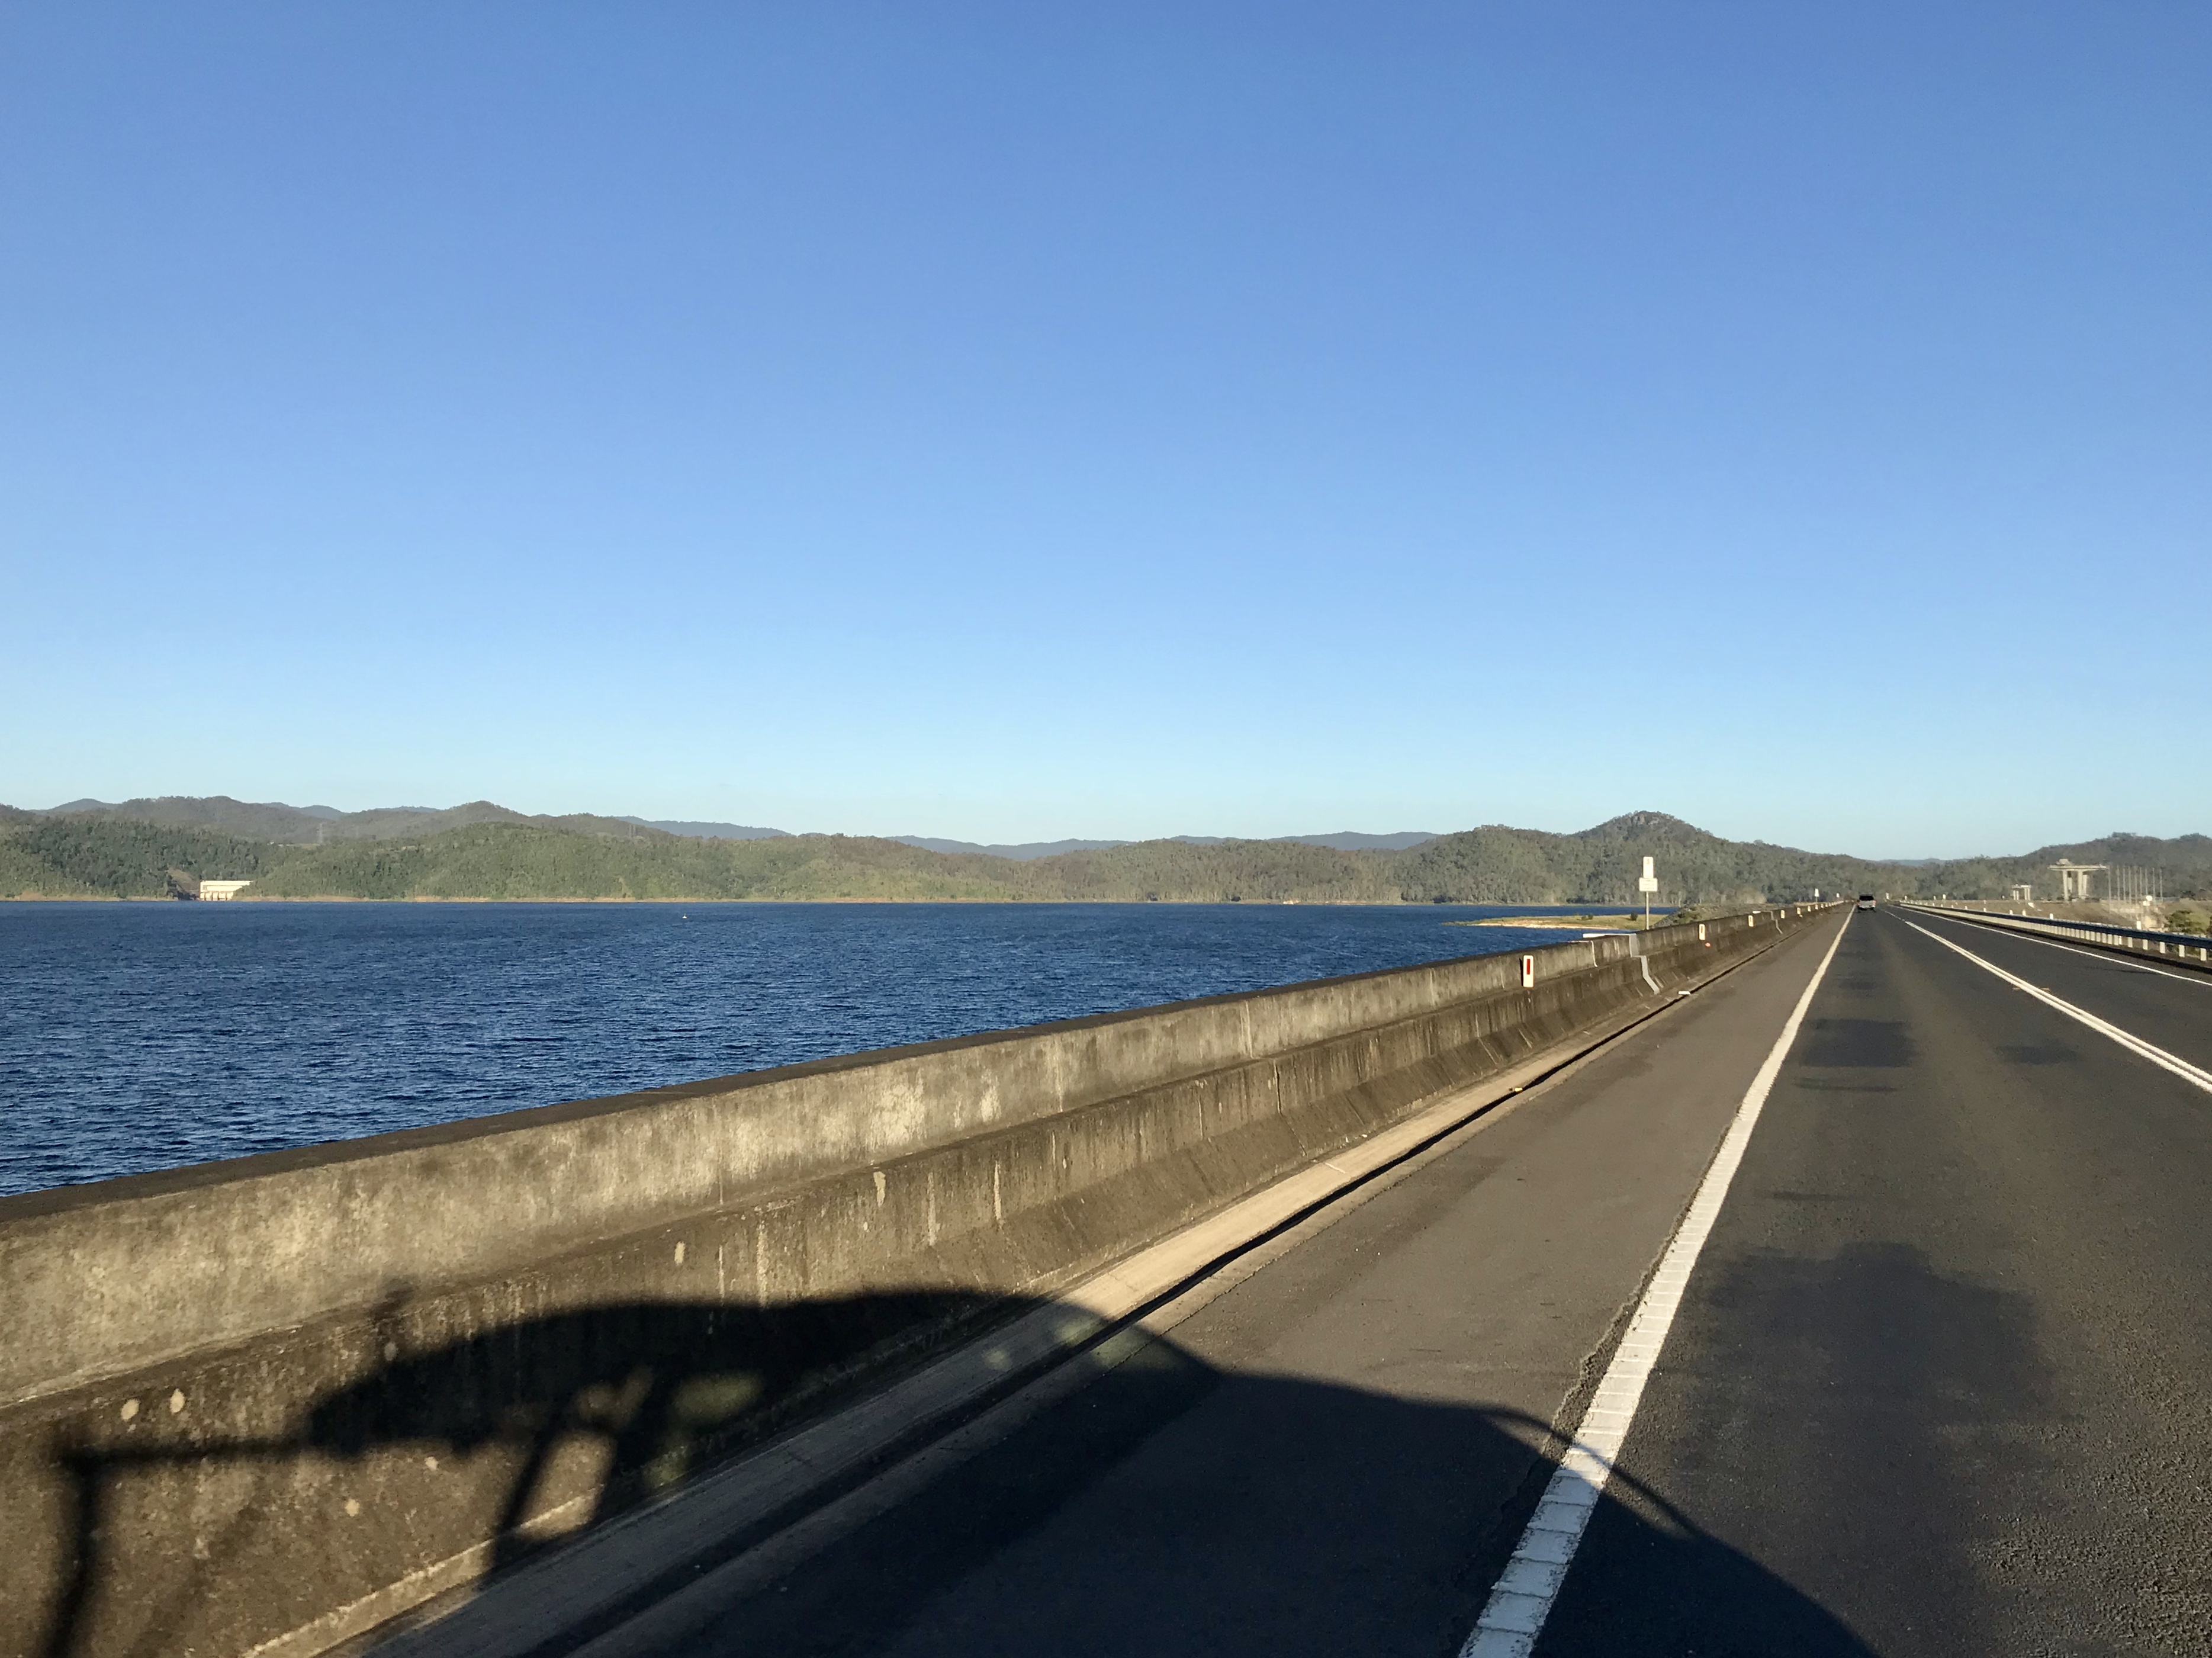 File:Wivenhoe Dam and Lake Wivenhoe, Queensland 02 jpg